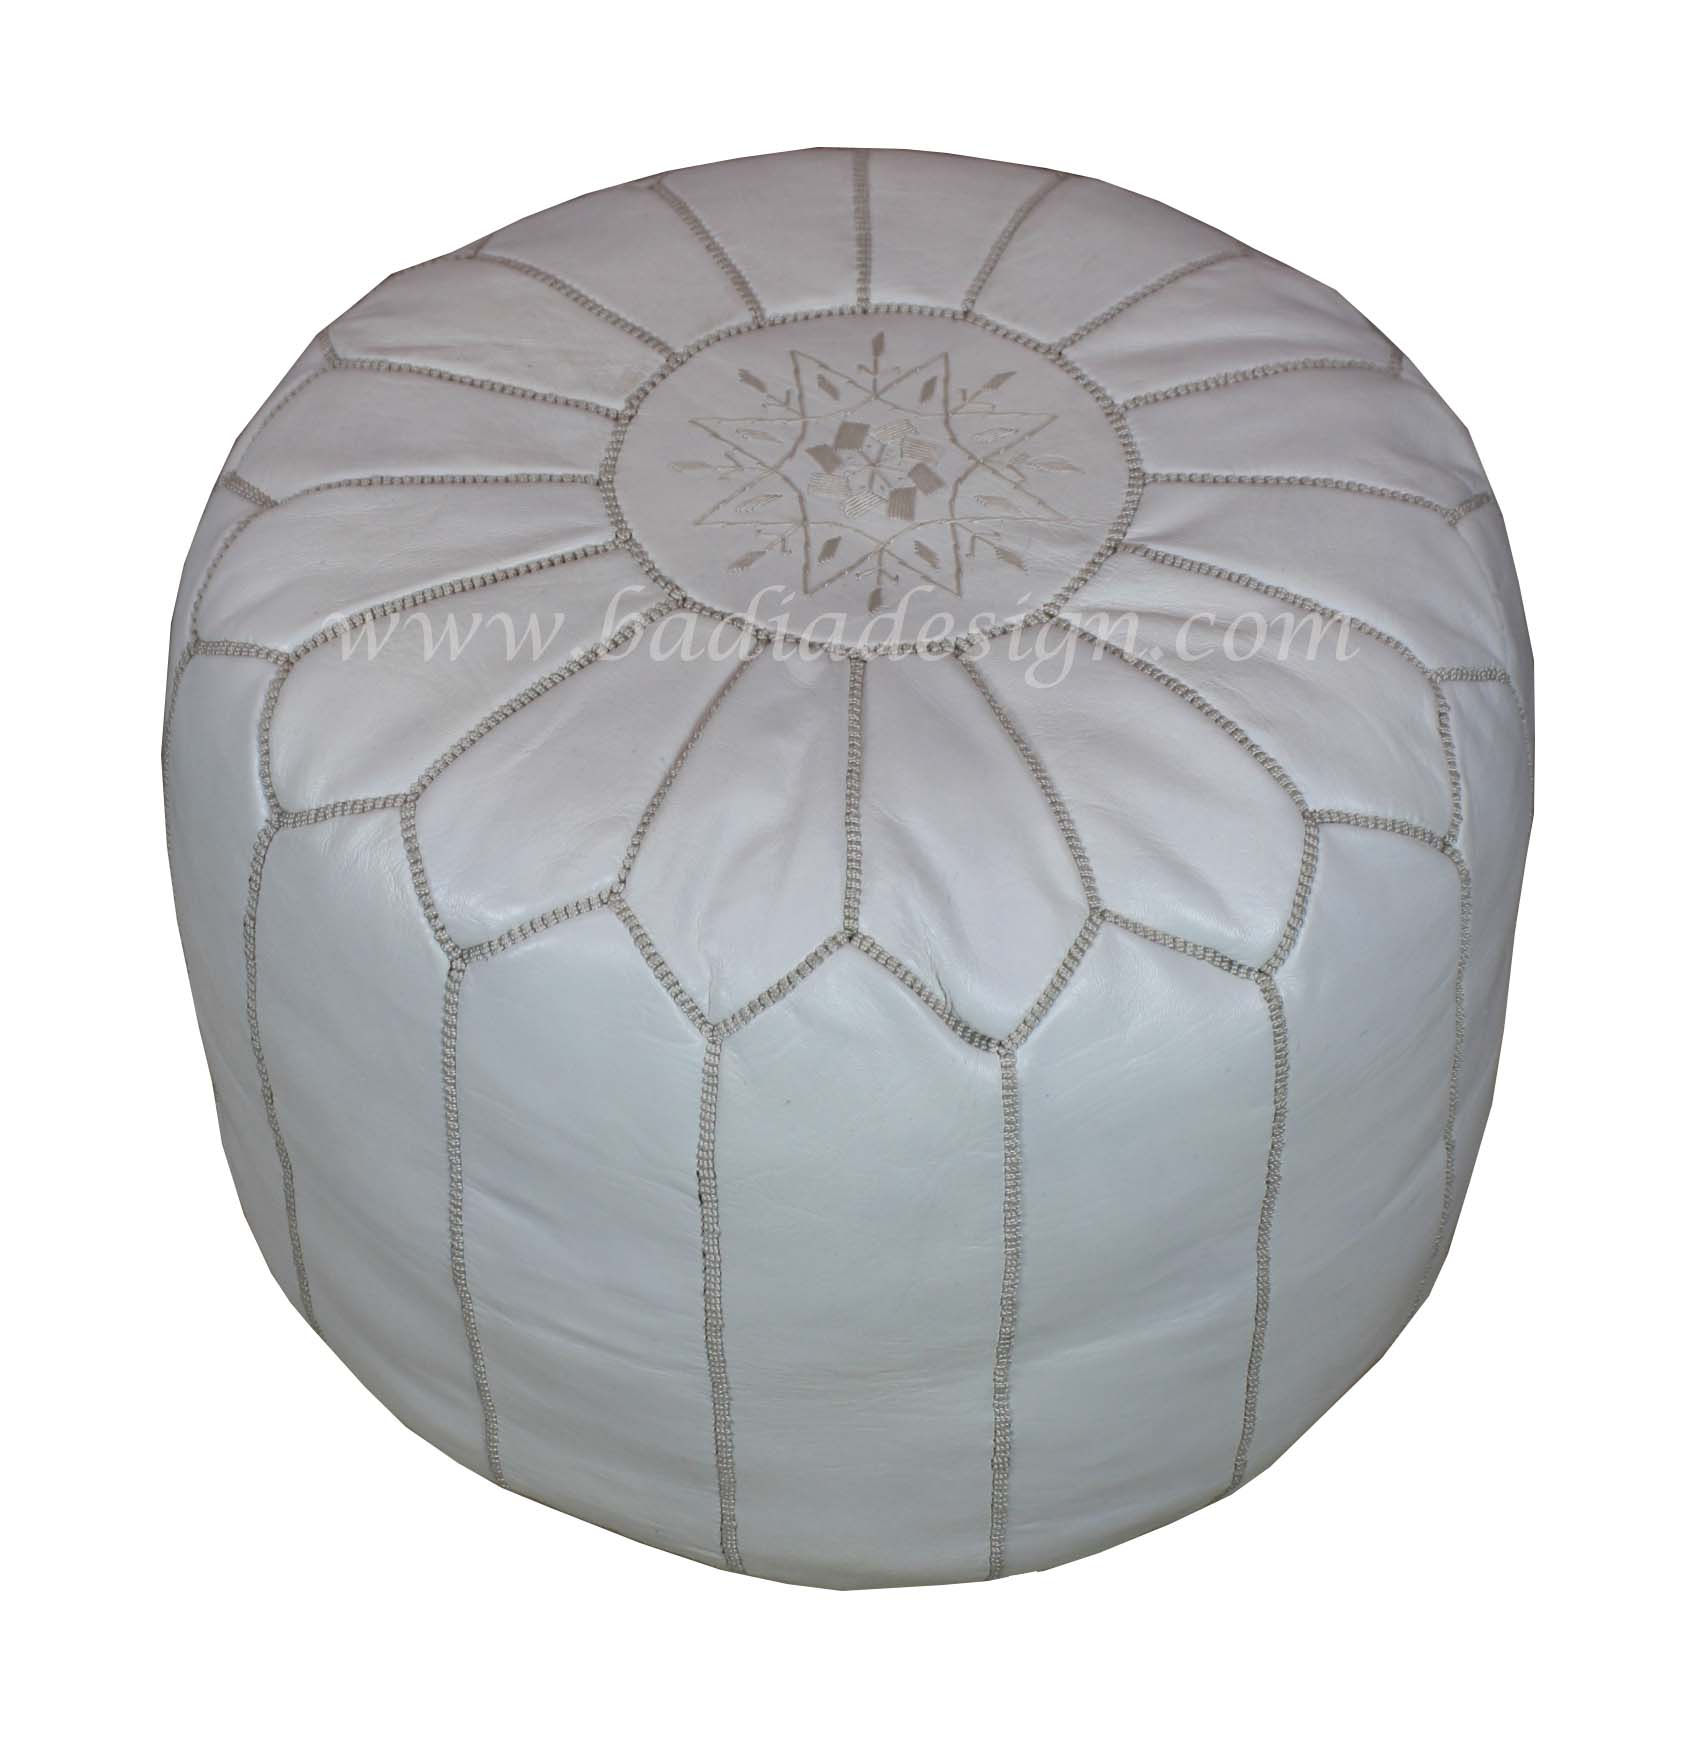 moroccan-round-leather-pouf-rlp010.jpg